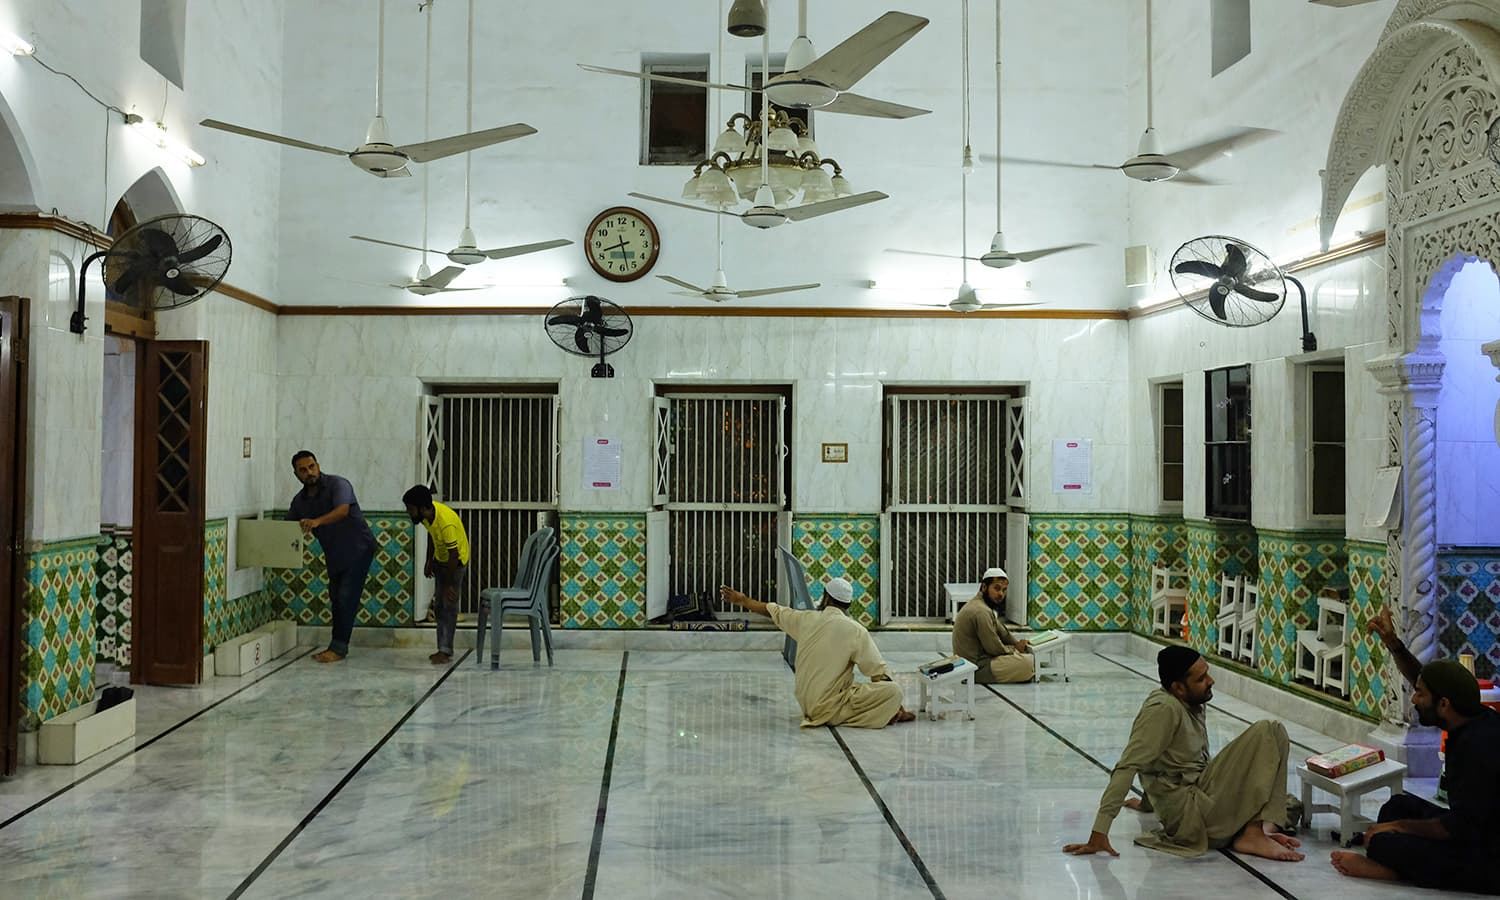 The main praying area inside the mosque.